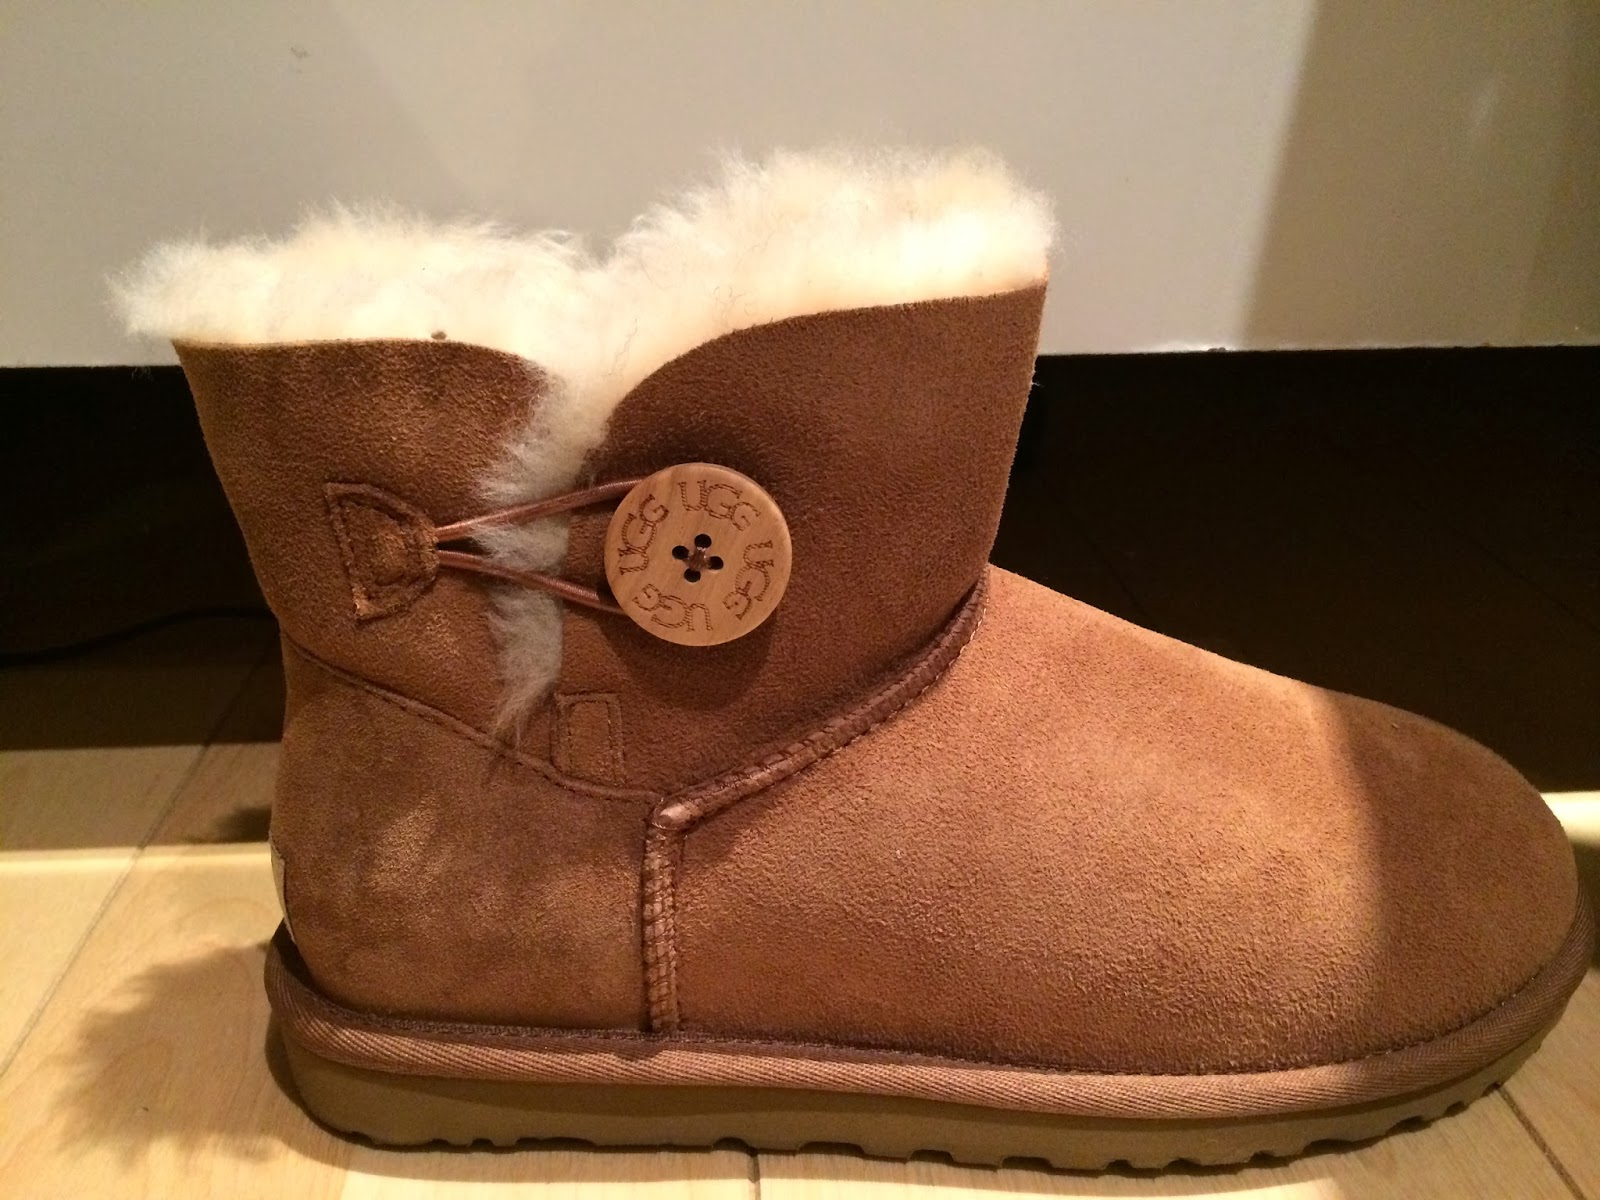 Cots Online Australia Buying Real Ugg Boots Online In Japan